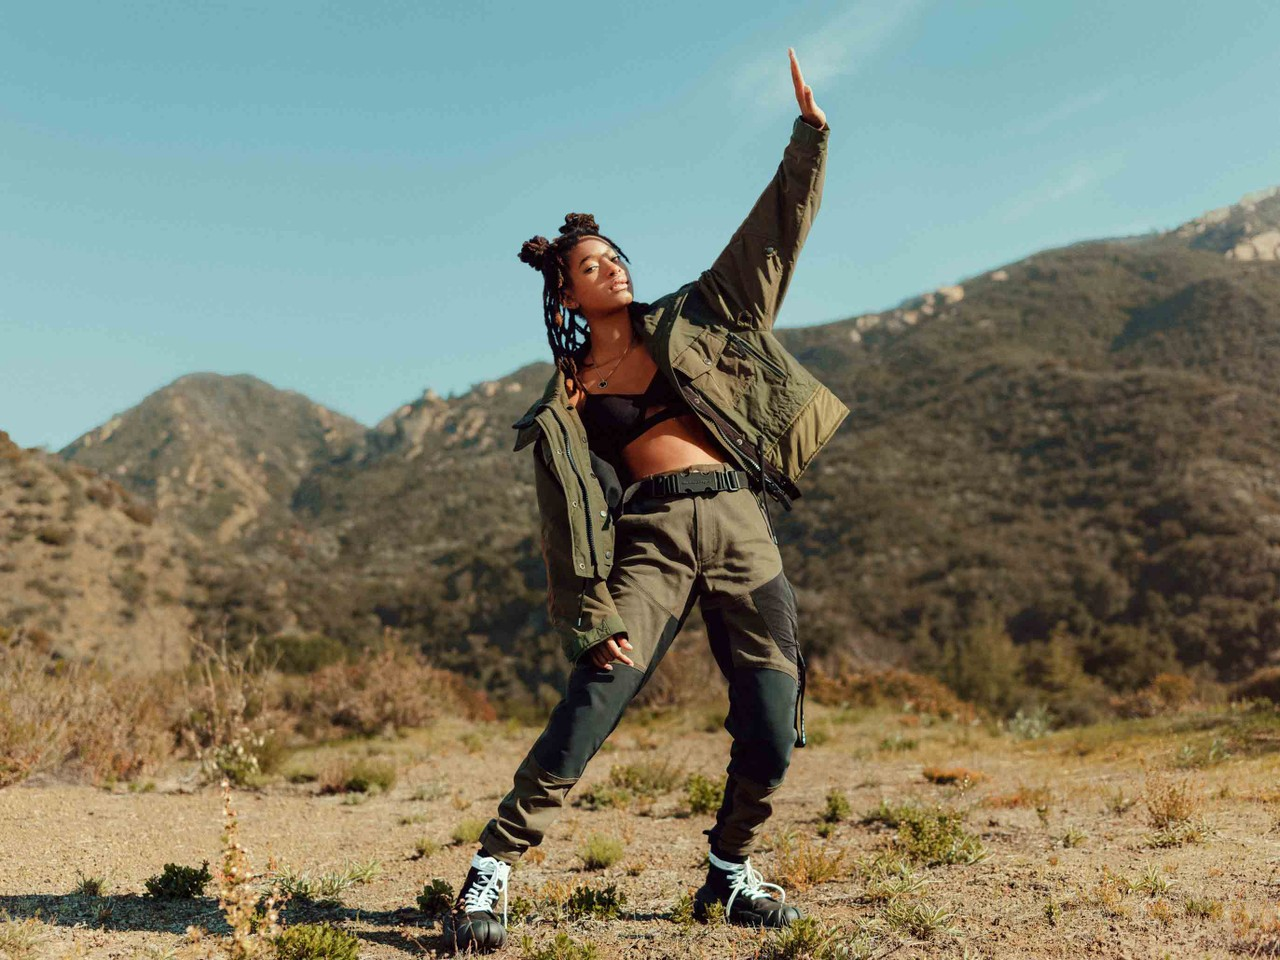 Willow Smith protagoniza el lookbook de la colección FW20 de la firma japonesa Onitsuka Tiger